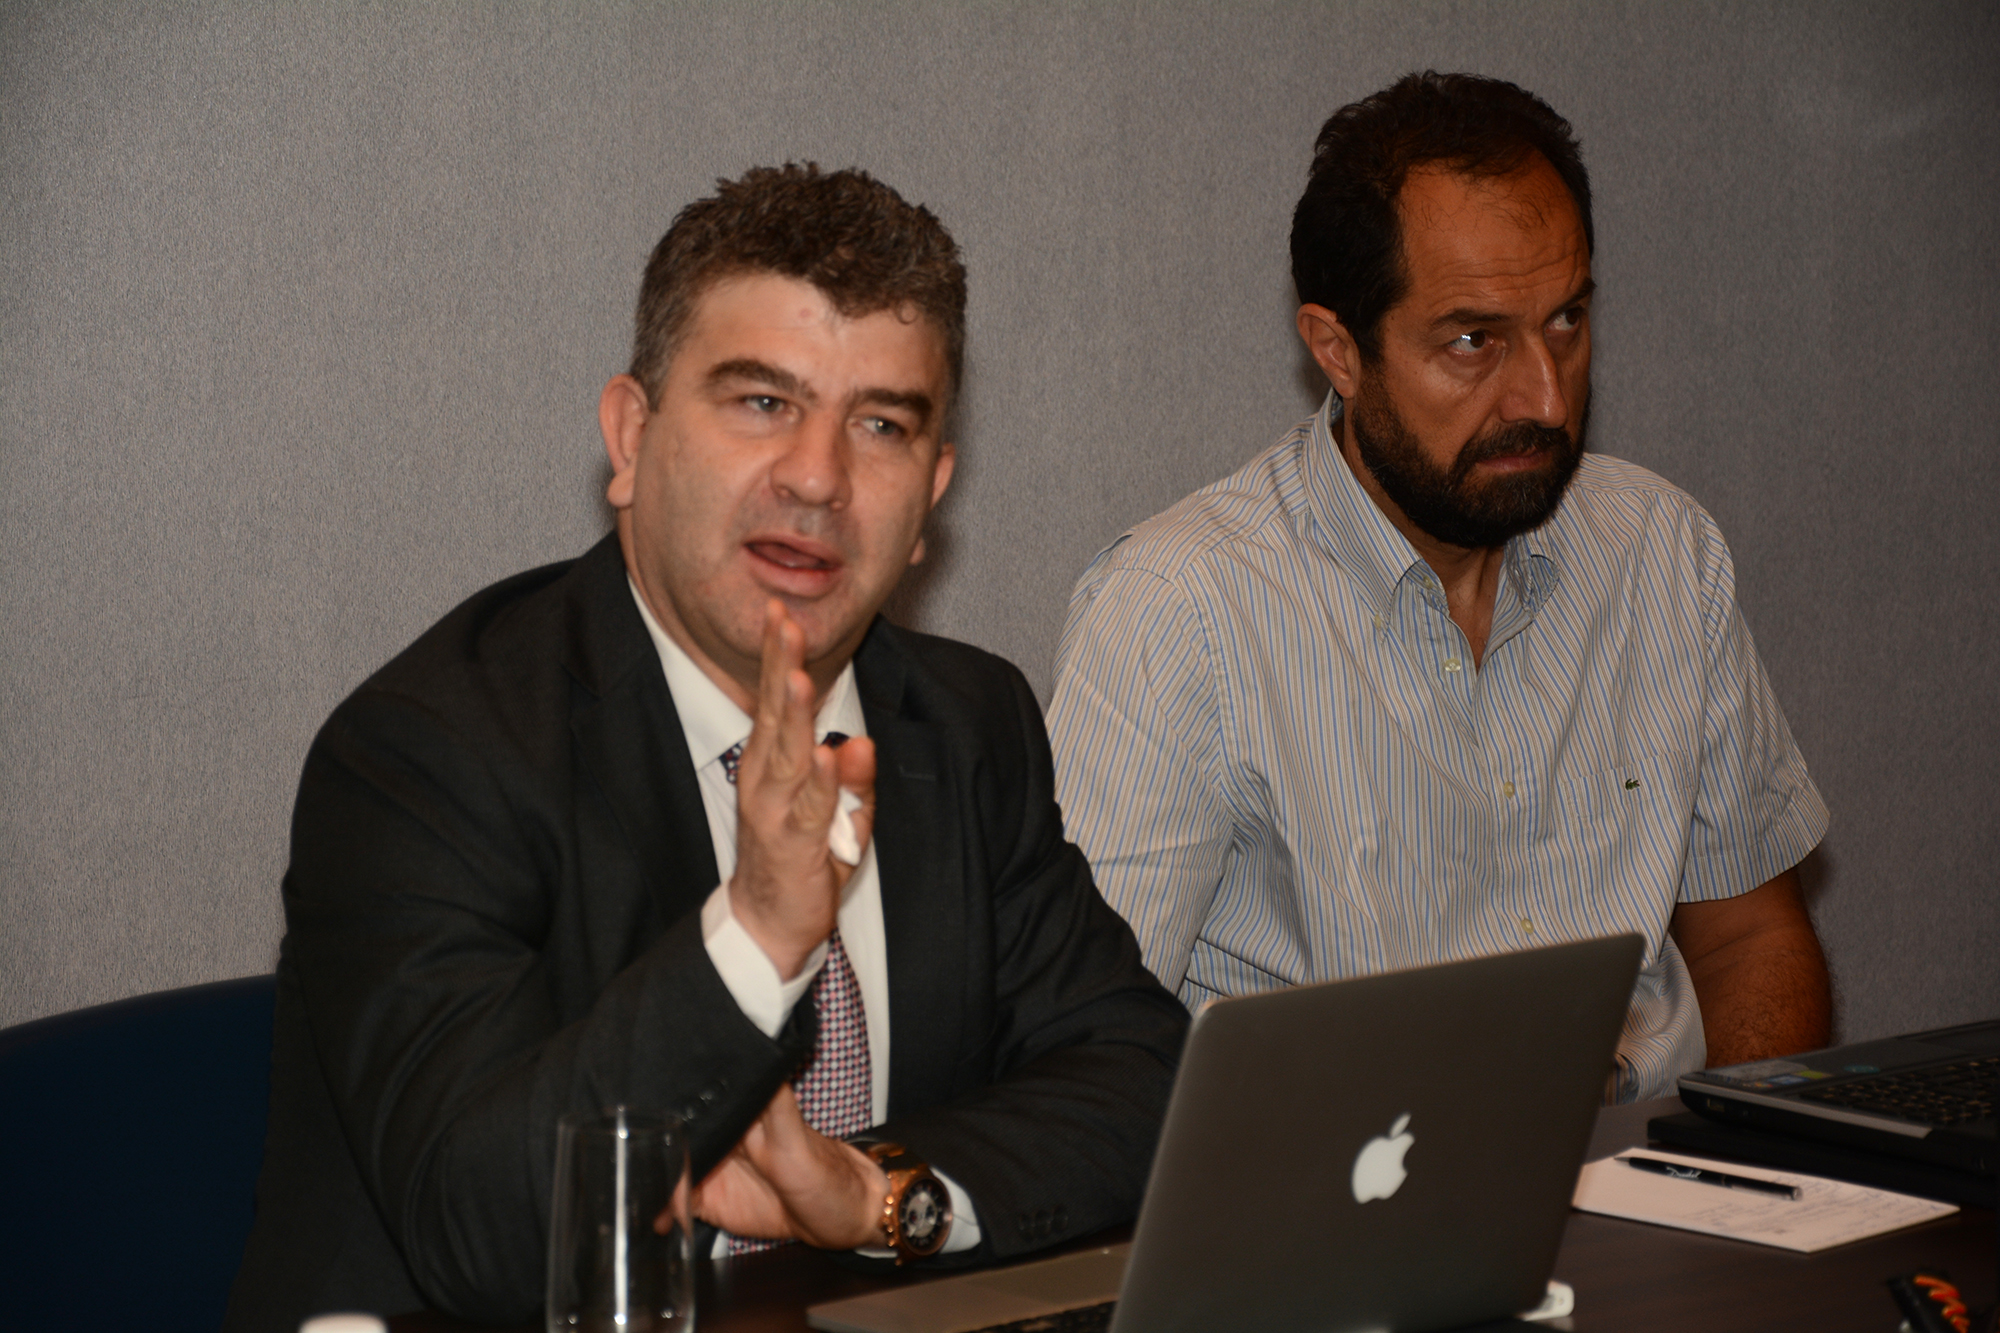 Cybersecurity roundtable 2 Amine Bermak.jpg